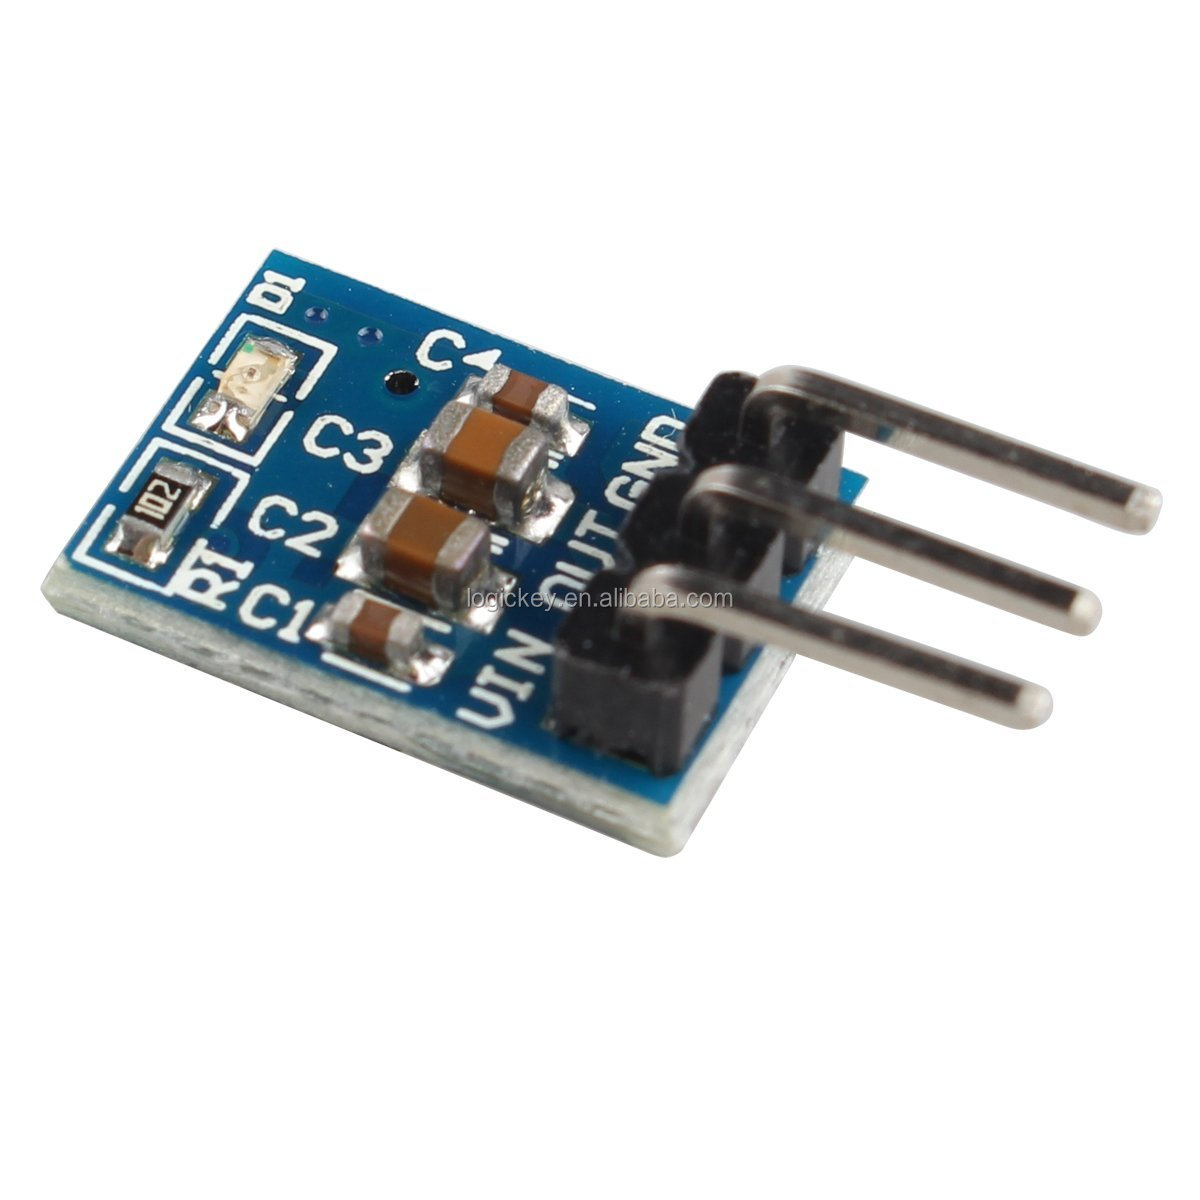 5V To 3.3V DC-DC Step-Down Power Supply Buck Module AMS1117 800MA